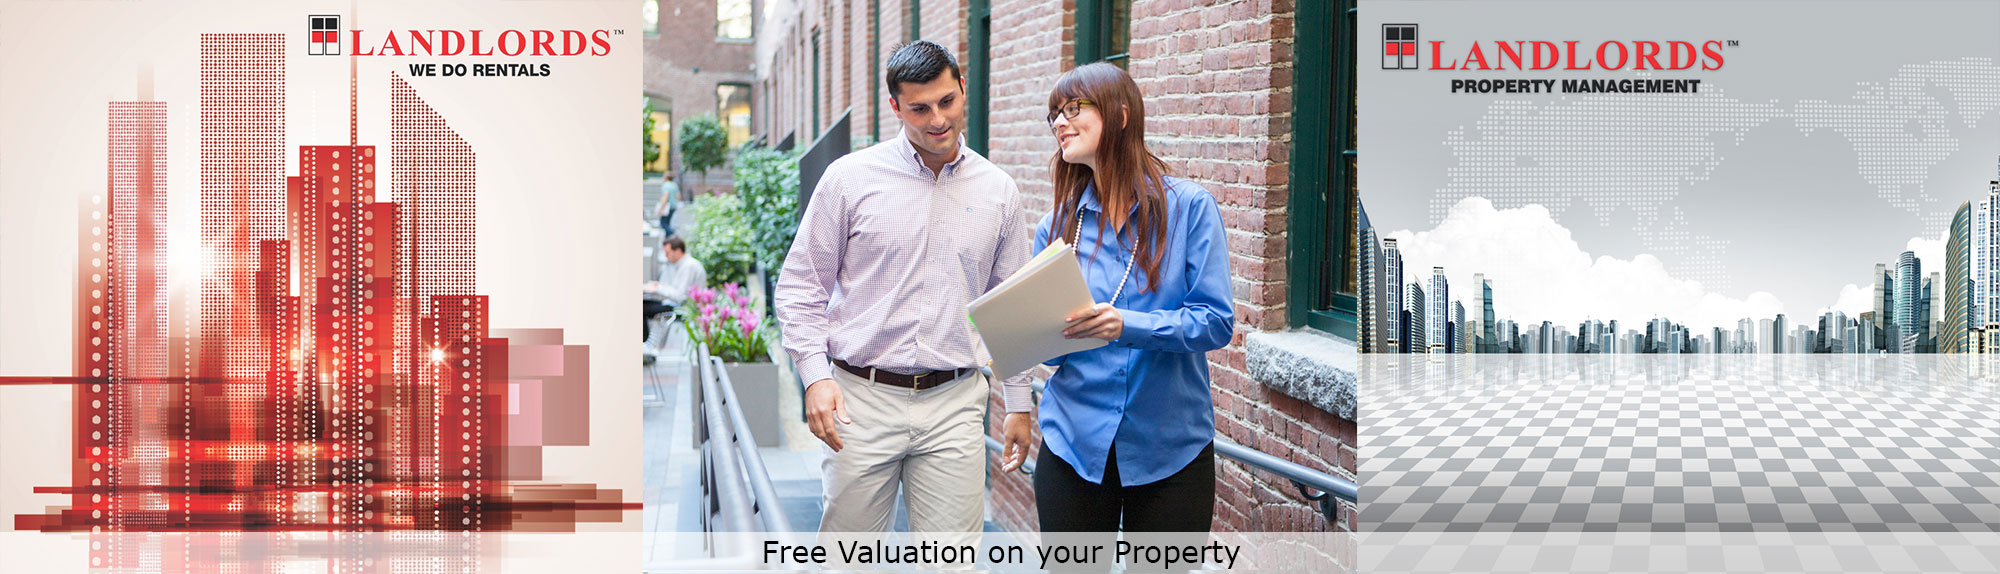 We do rentals and property management. Get a free valuation on your property.